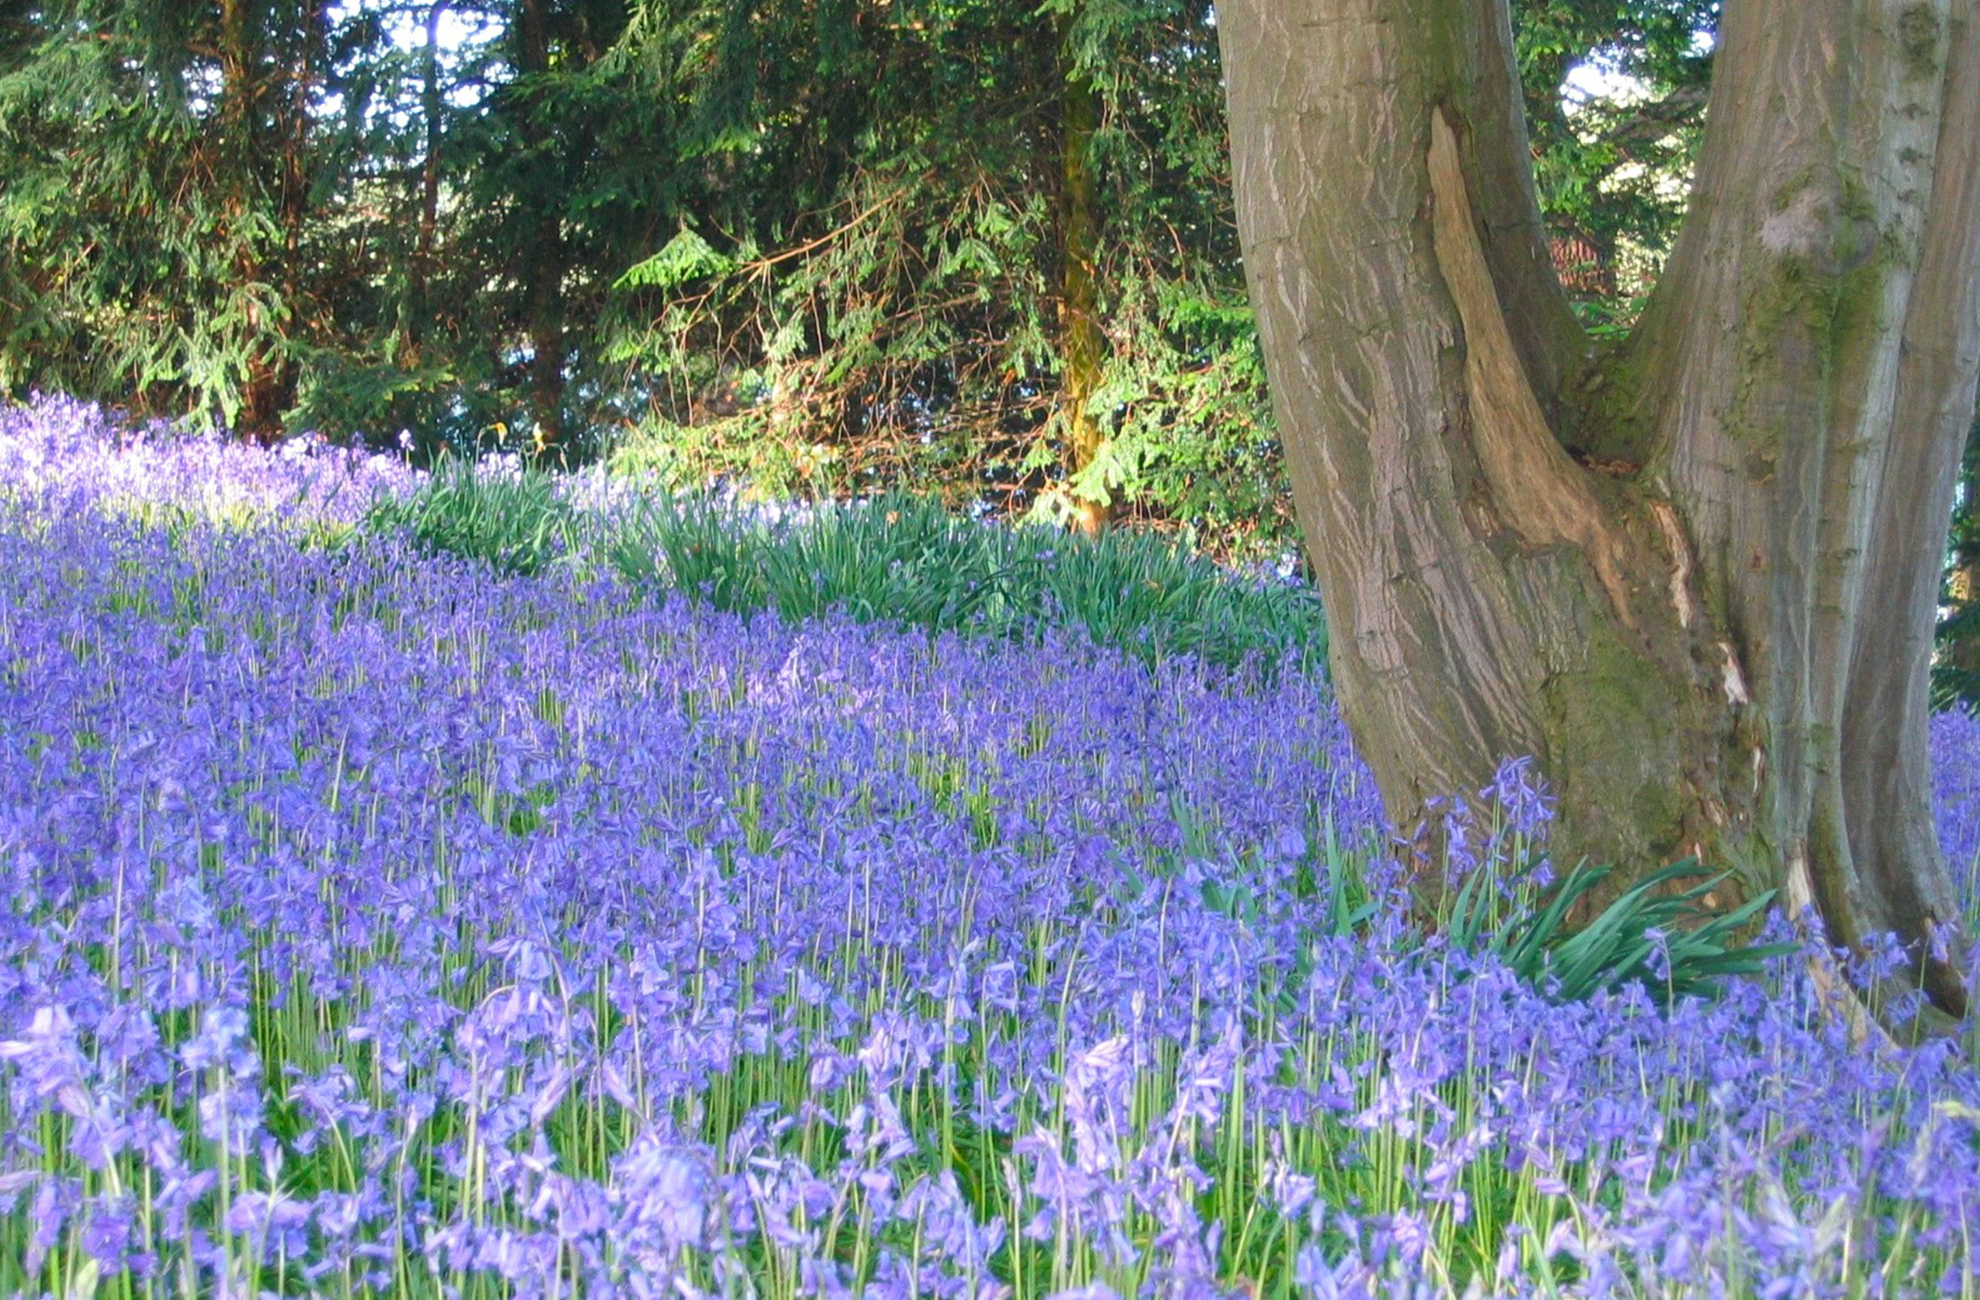 The woodland floor at Combermere Abbey is a carpeted with bluebells